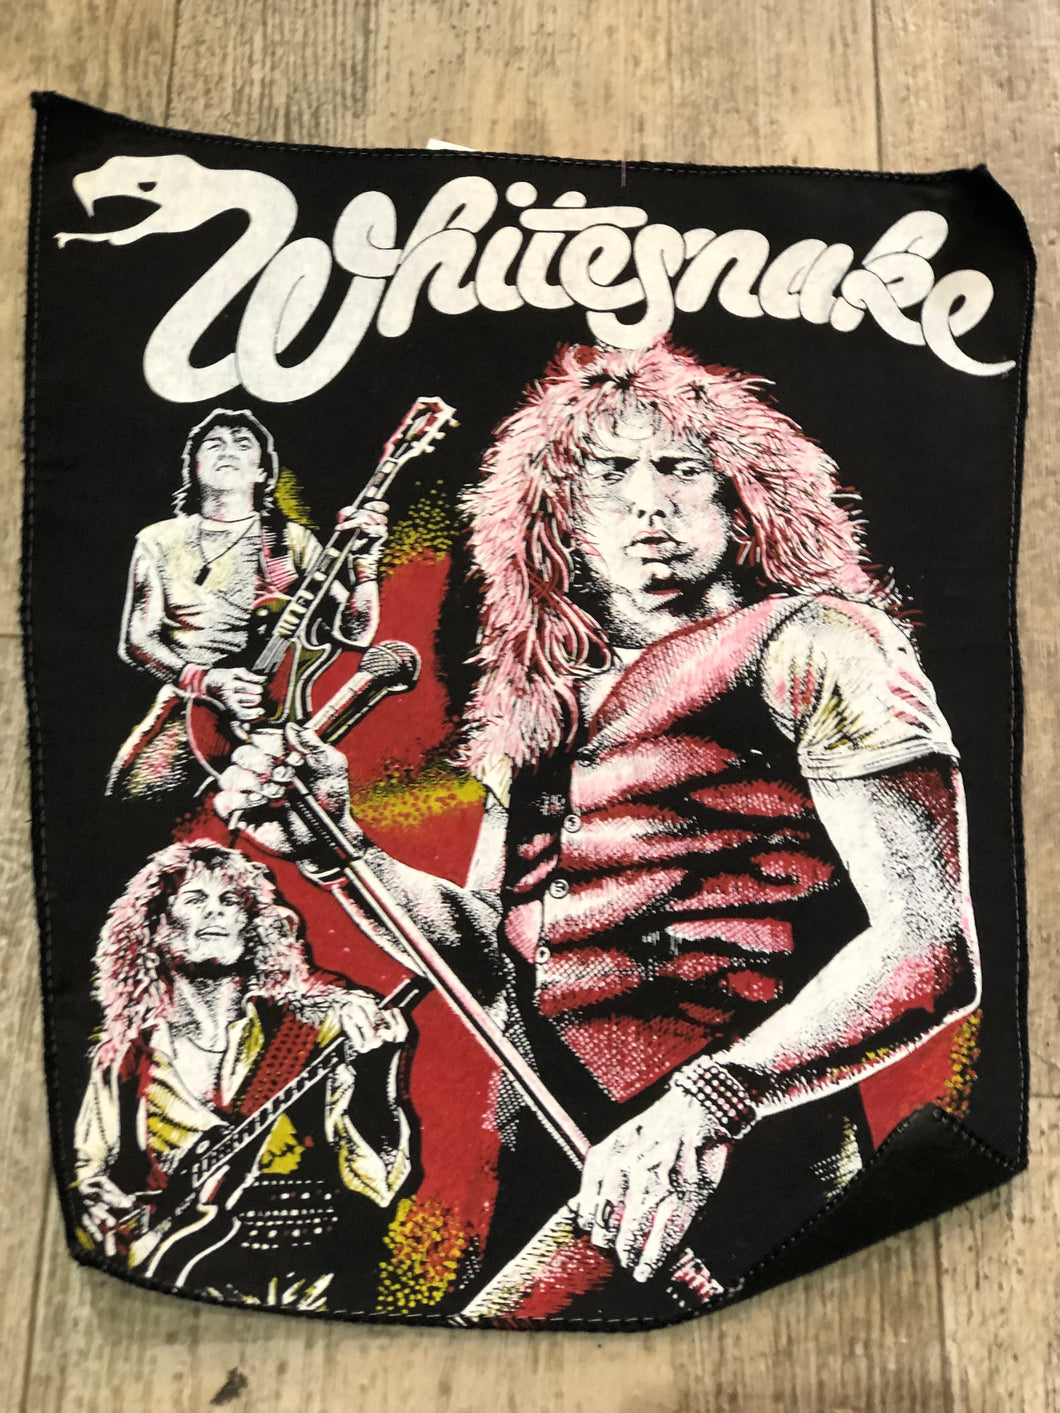 Vintage 80s Whitesnake Back Patch | Patches - 80s 90s Retro Vintage Clothing | Spark Pretty